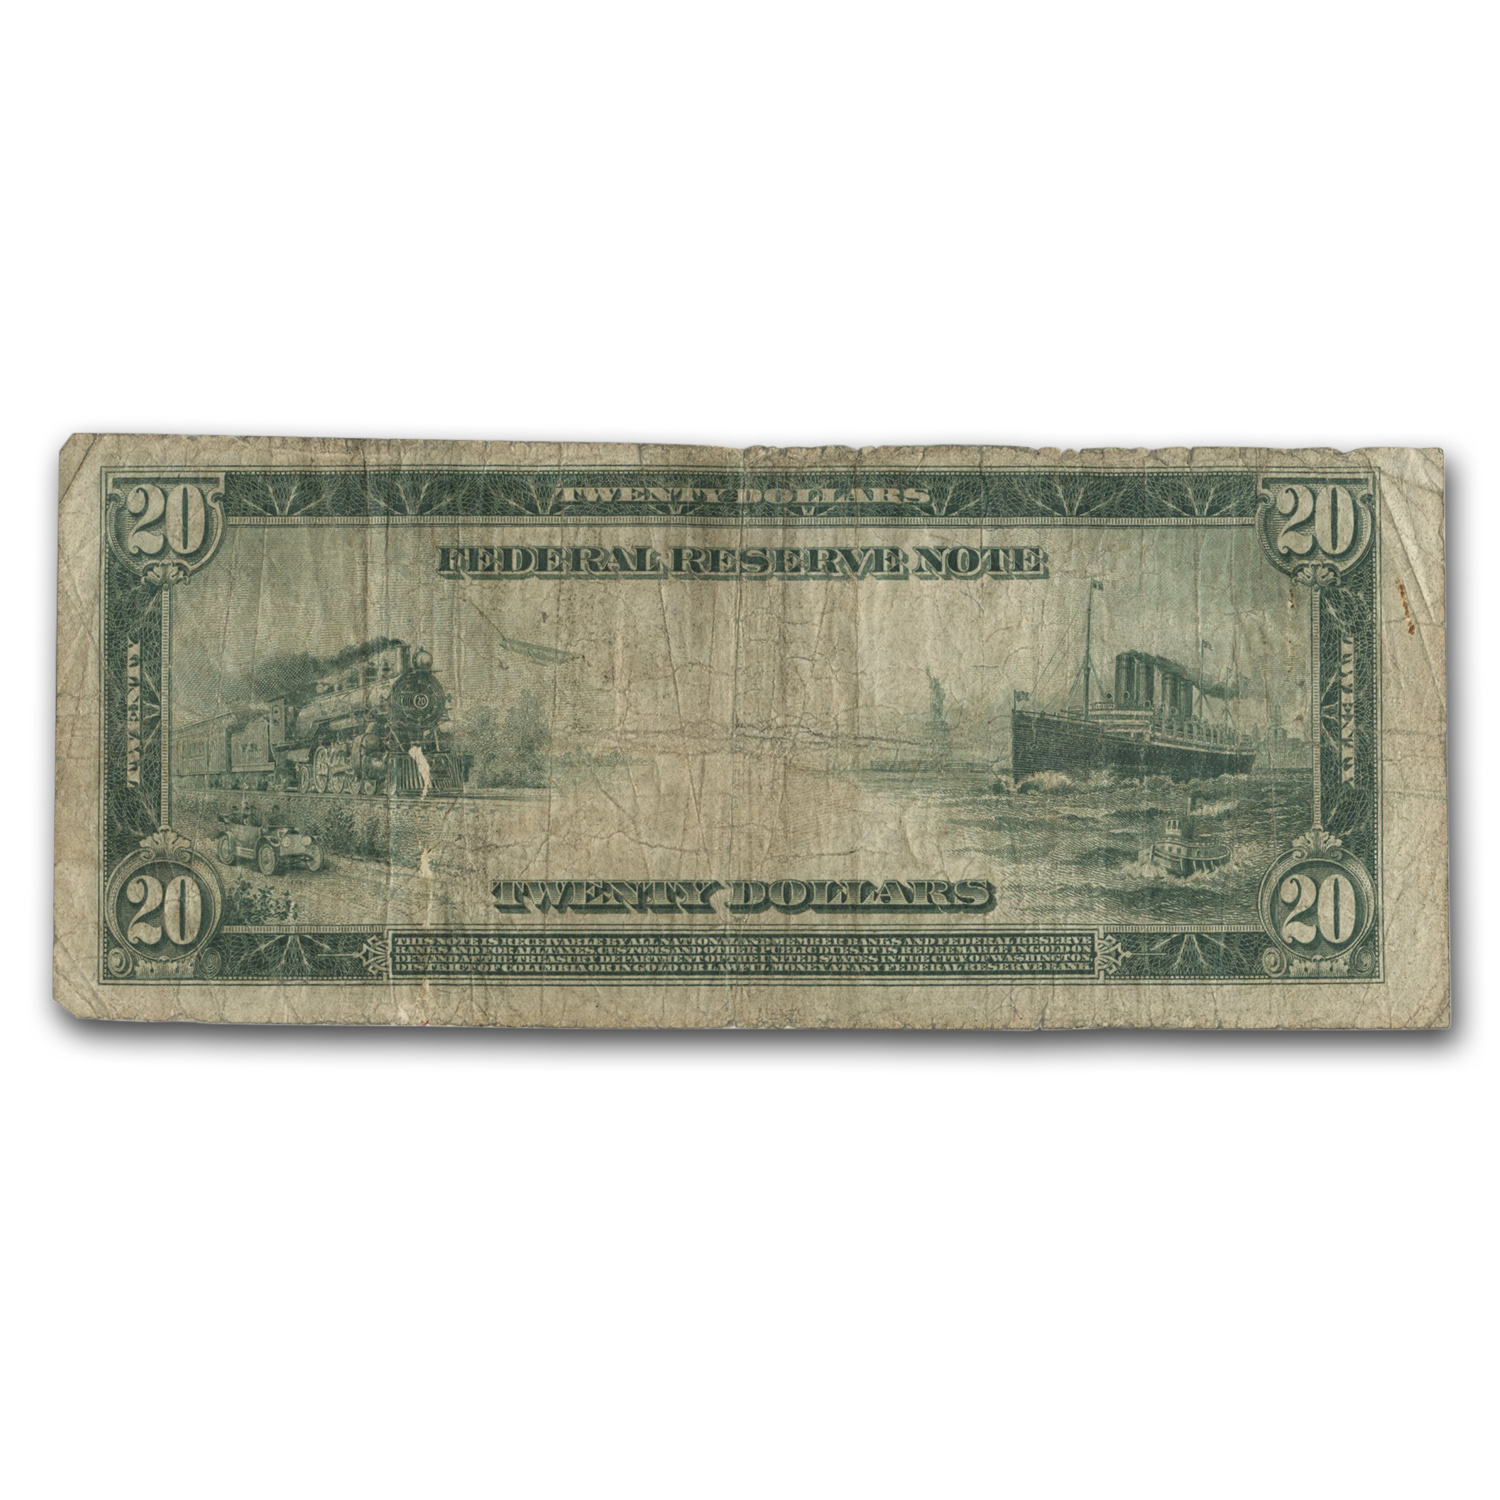 1914 (L-San Francisco) $20 FRN VG